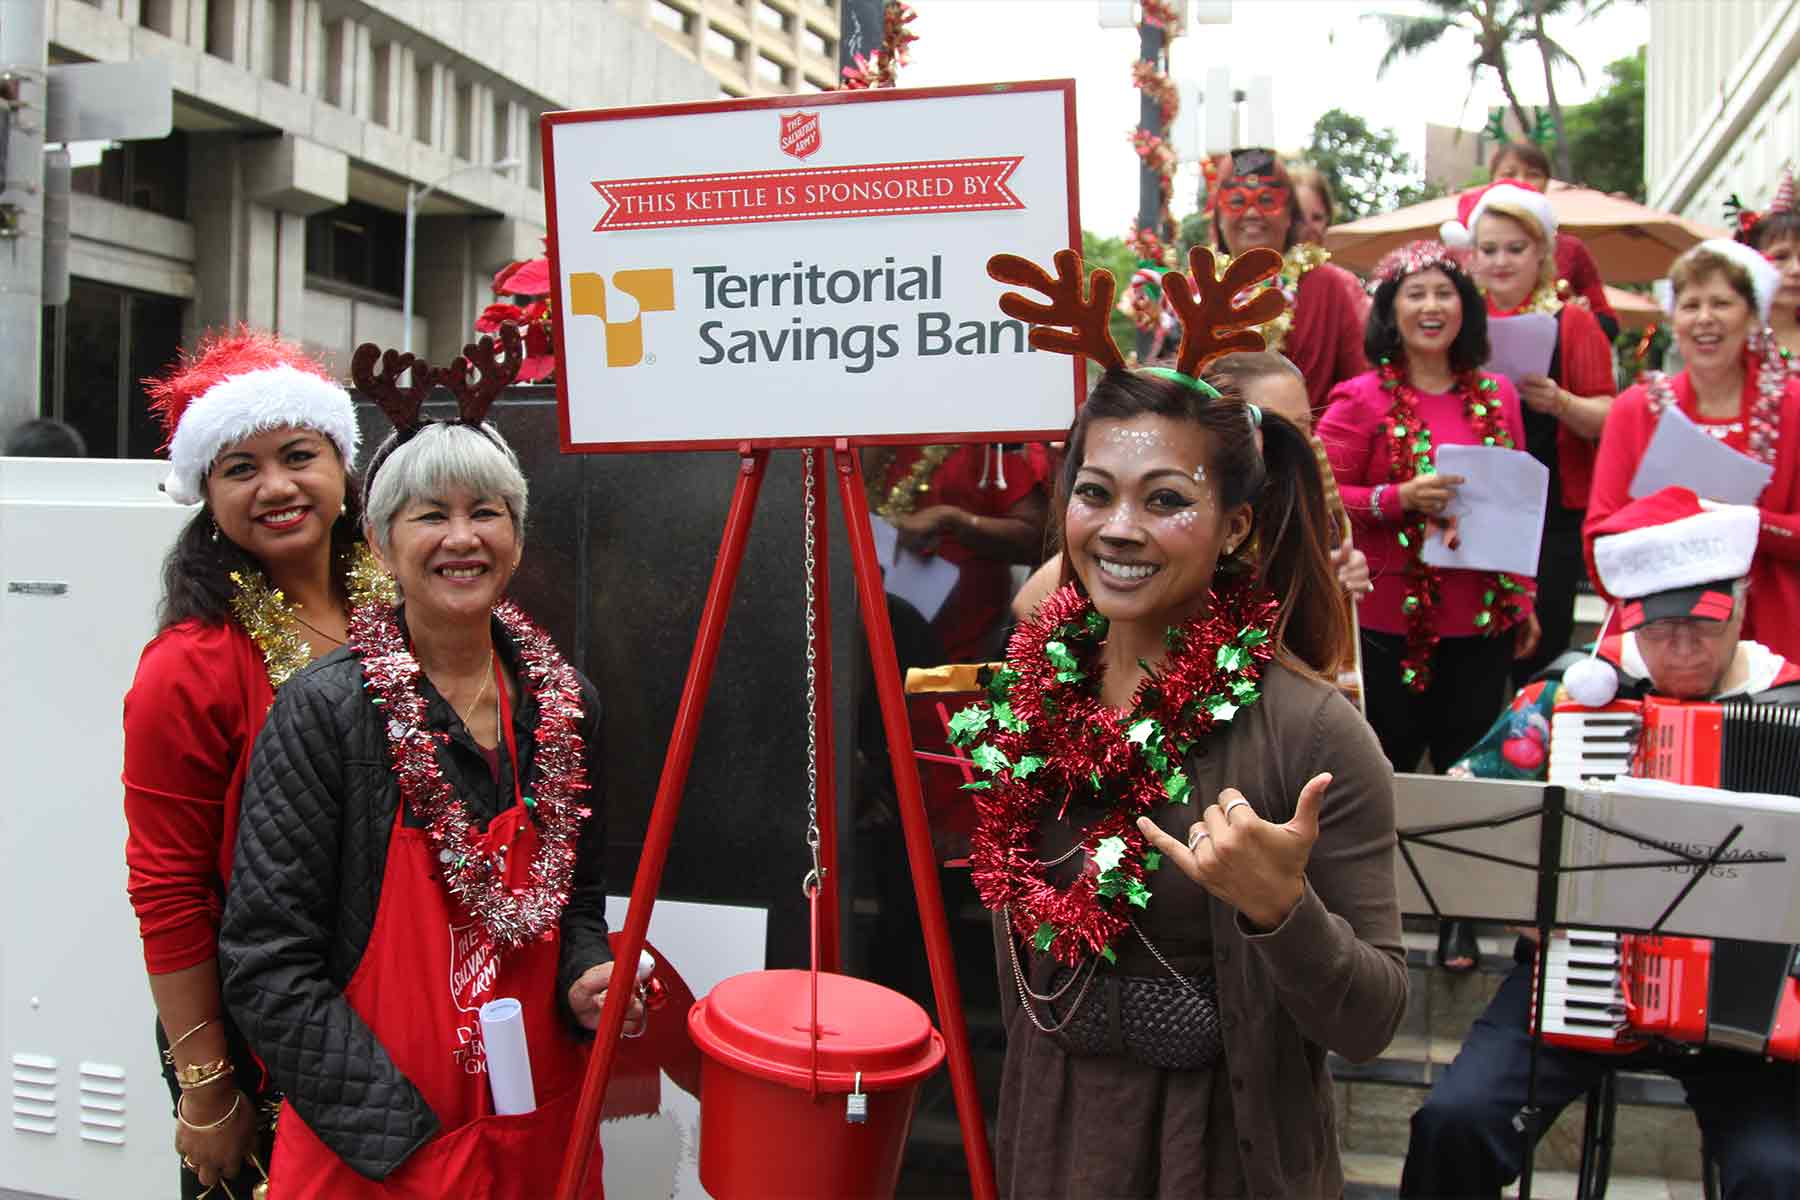 territorial savings bank ringing kettles